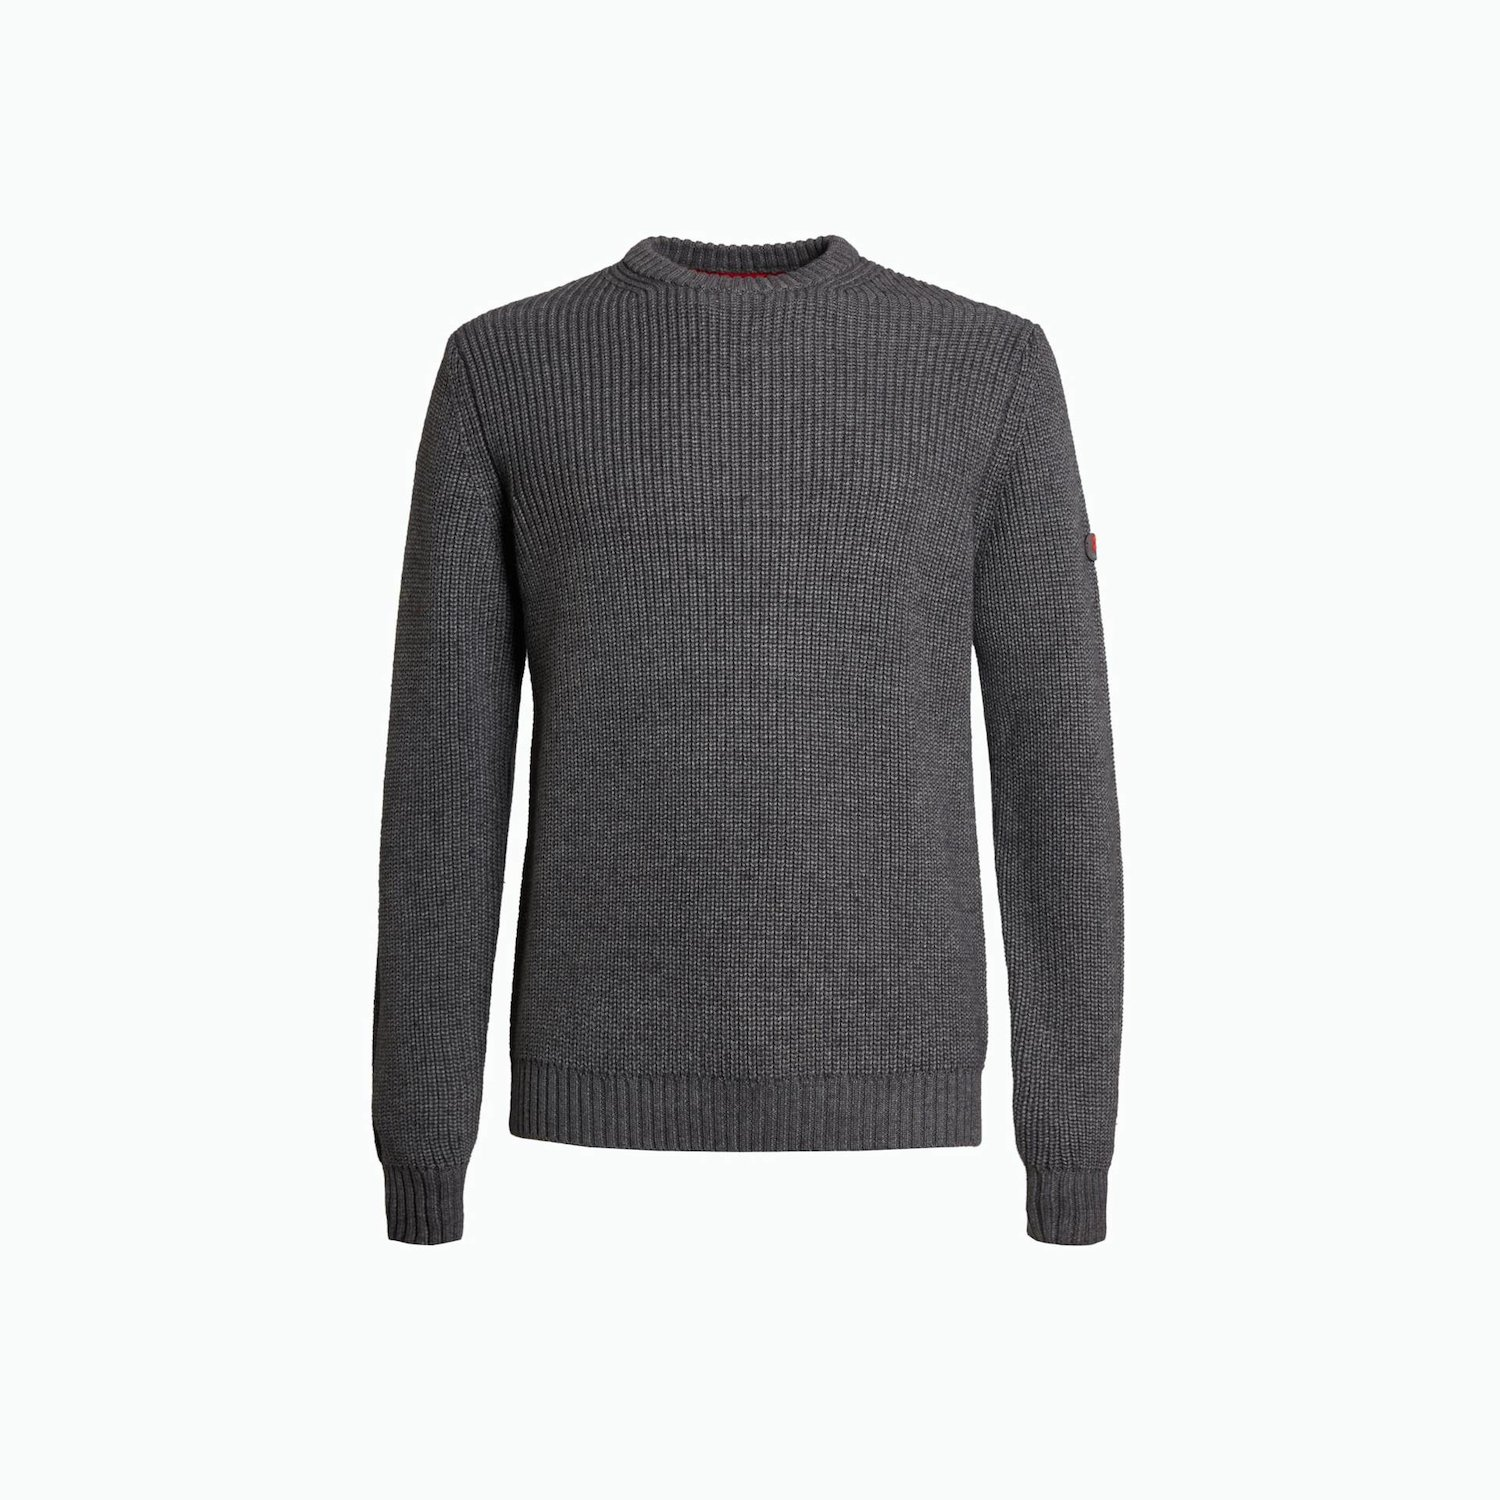 B140 sweater - Grey Melange